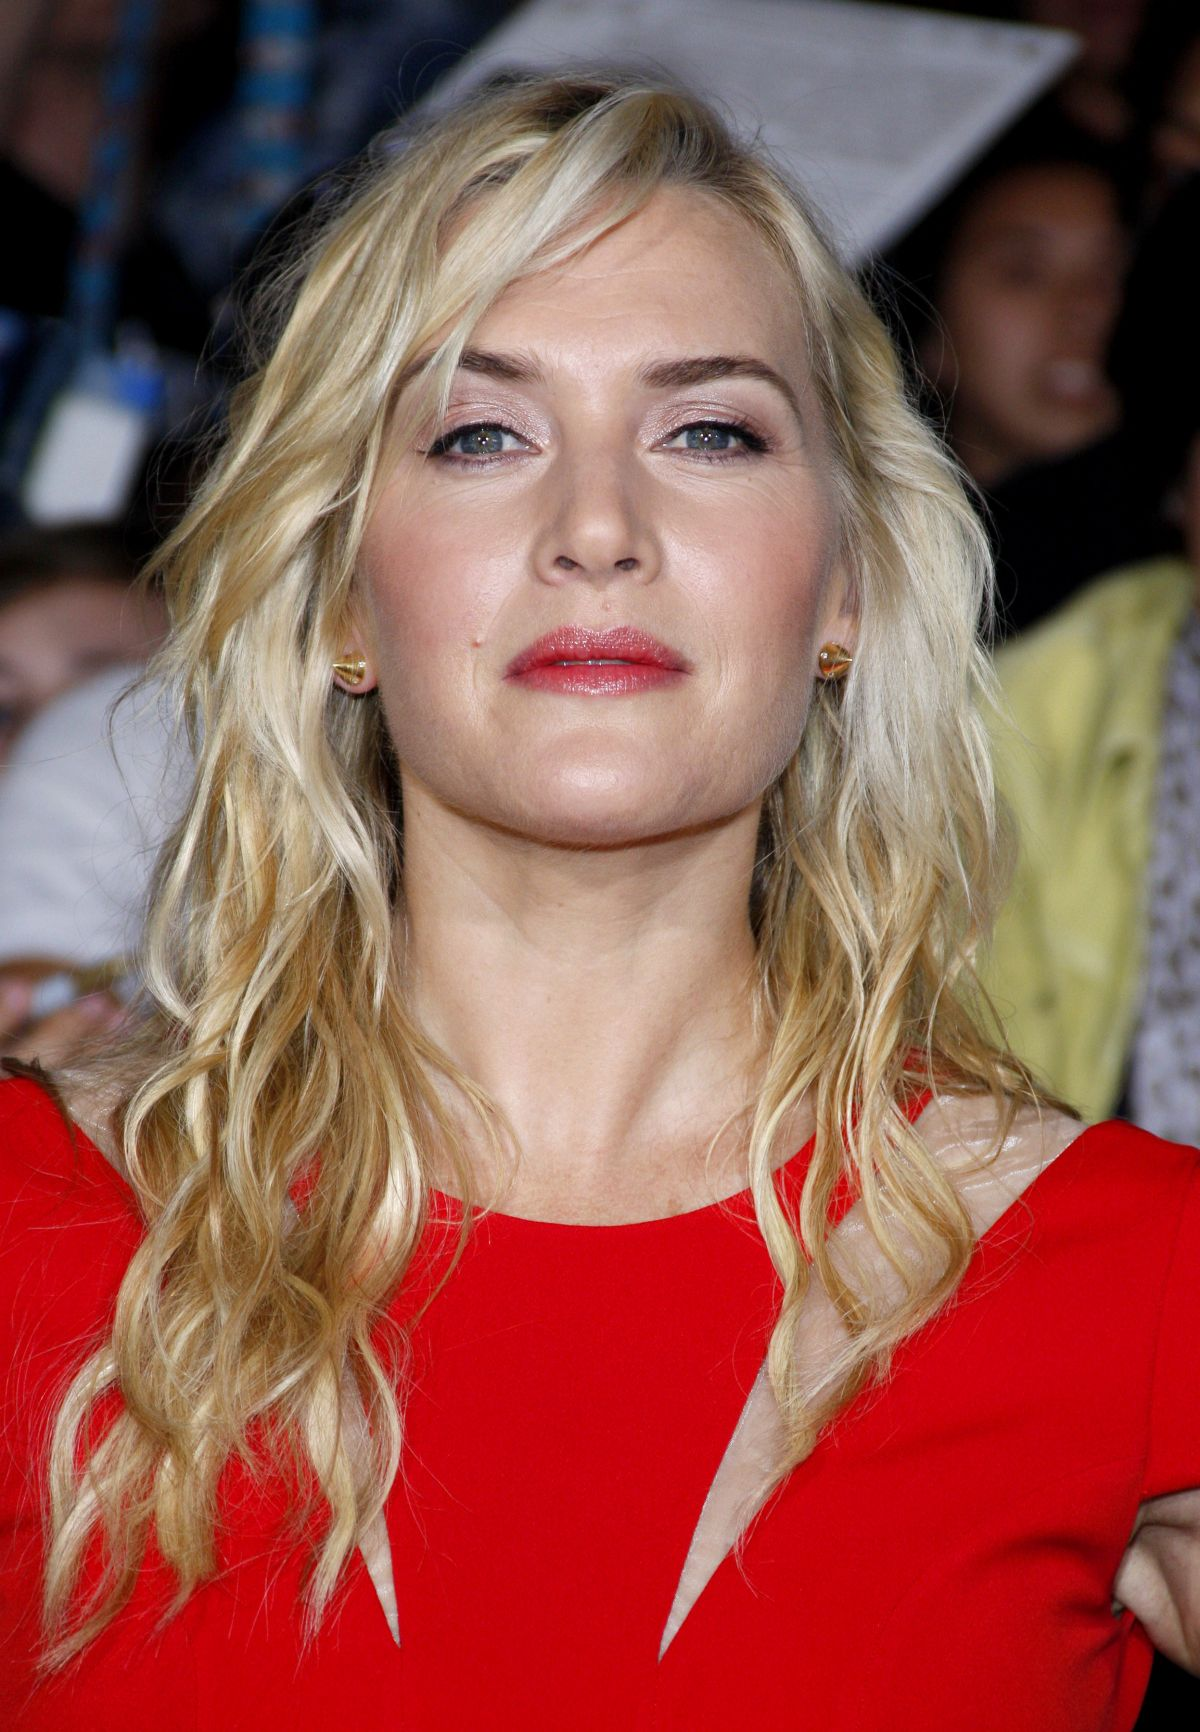 KATE WINSLET At Divergent Premiere In Los Angeles U2013 HawtCelebs